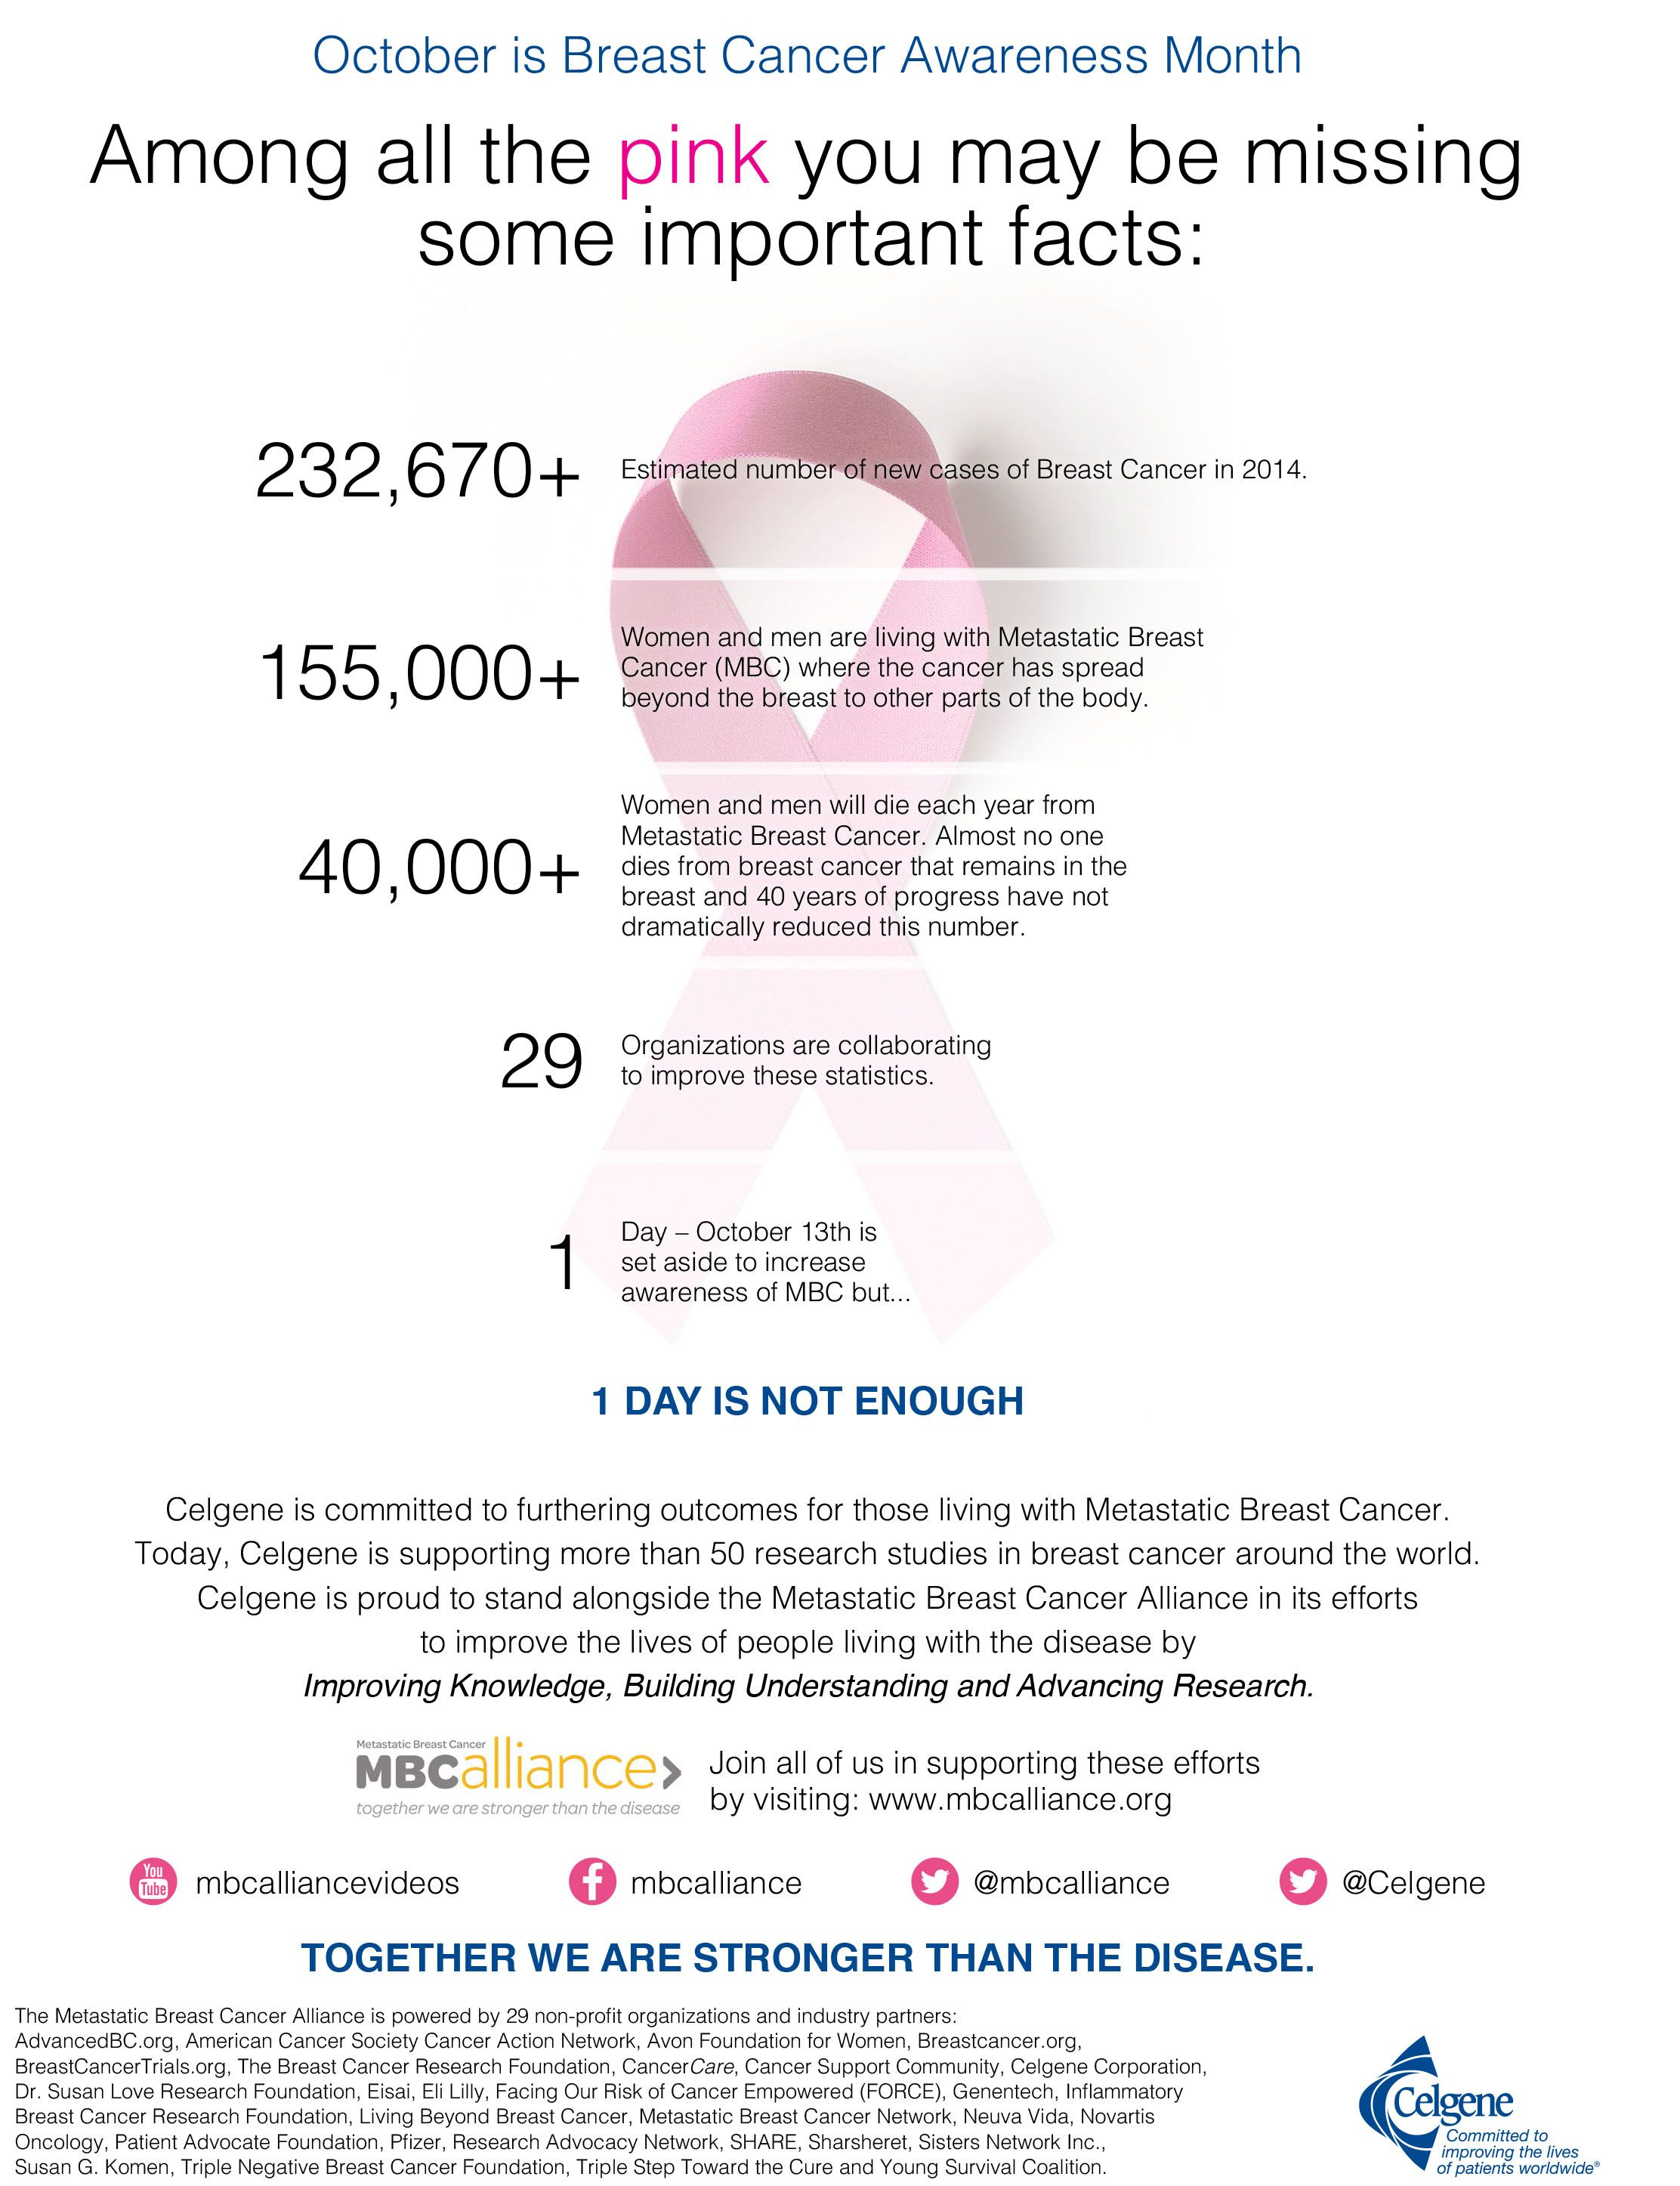 Advise breast cancer fun facts not